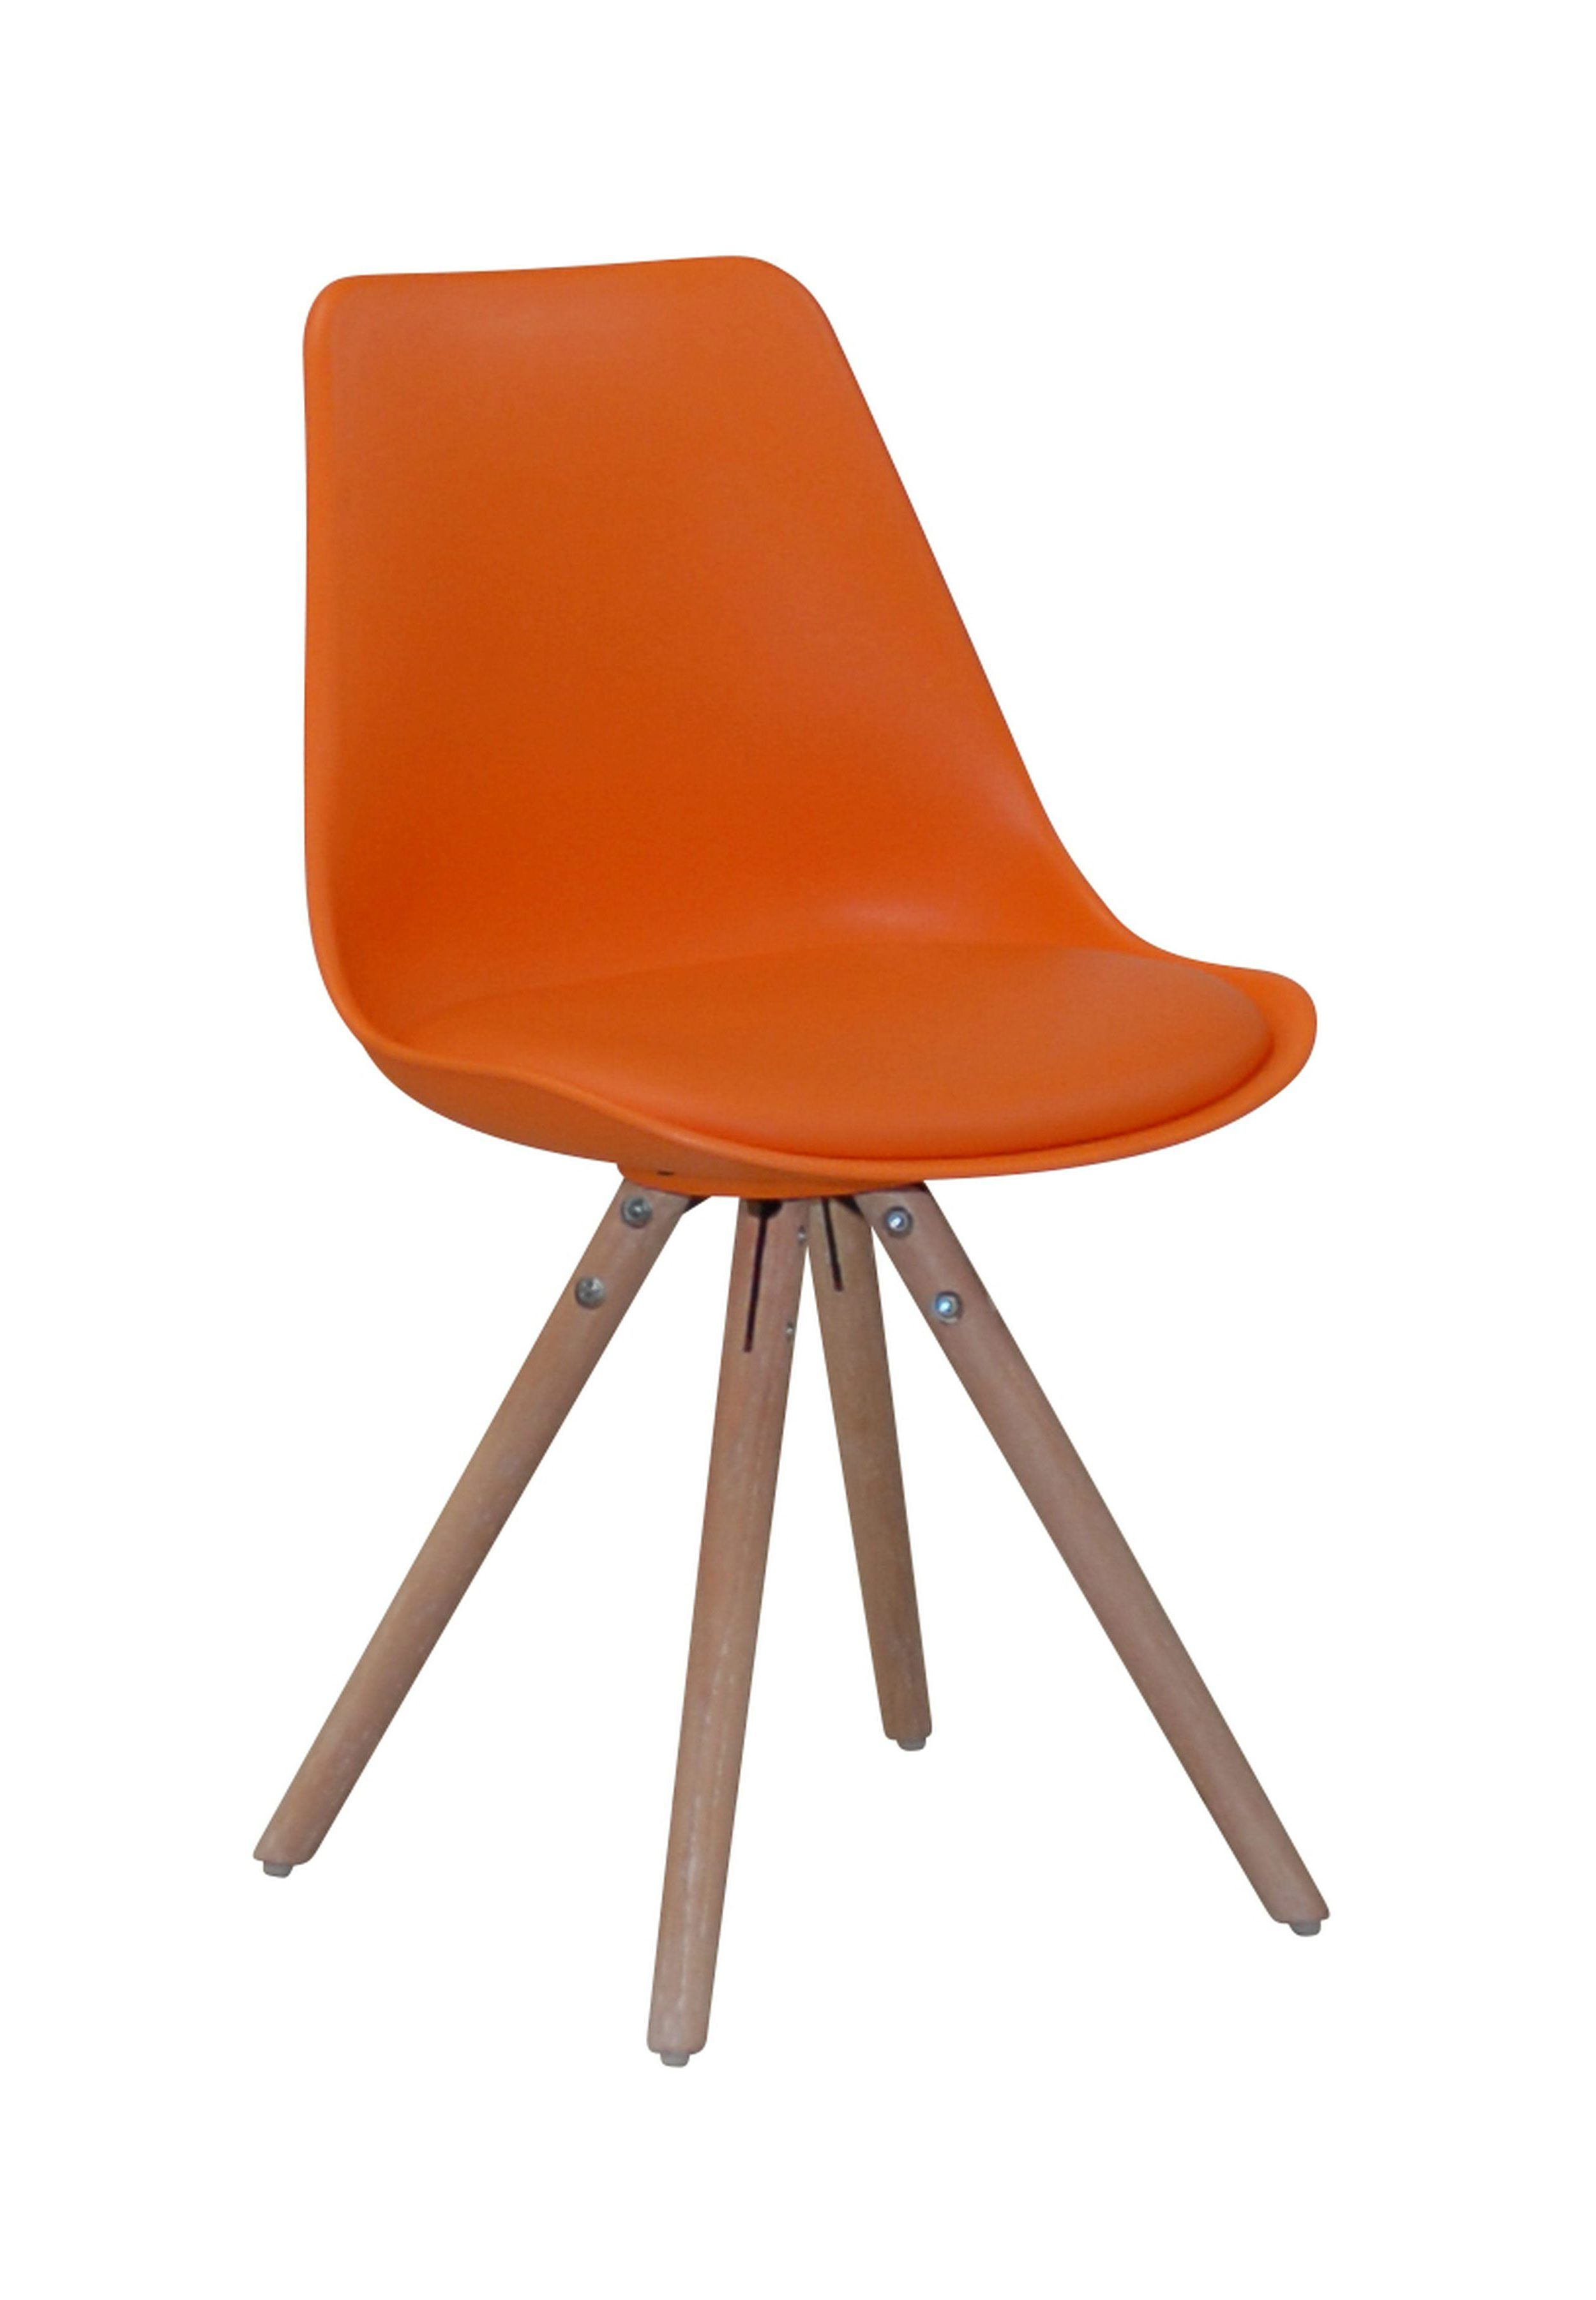 Chaise Scandinave Orange Oslo But Eetkamerstoelen Stoelen Meubels